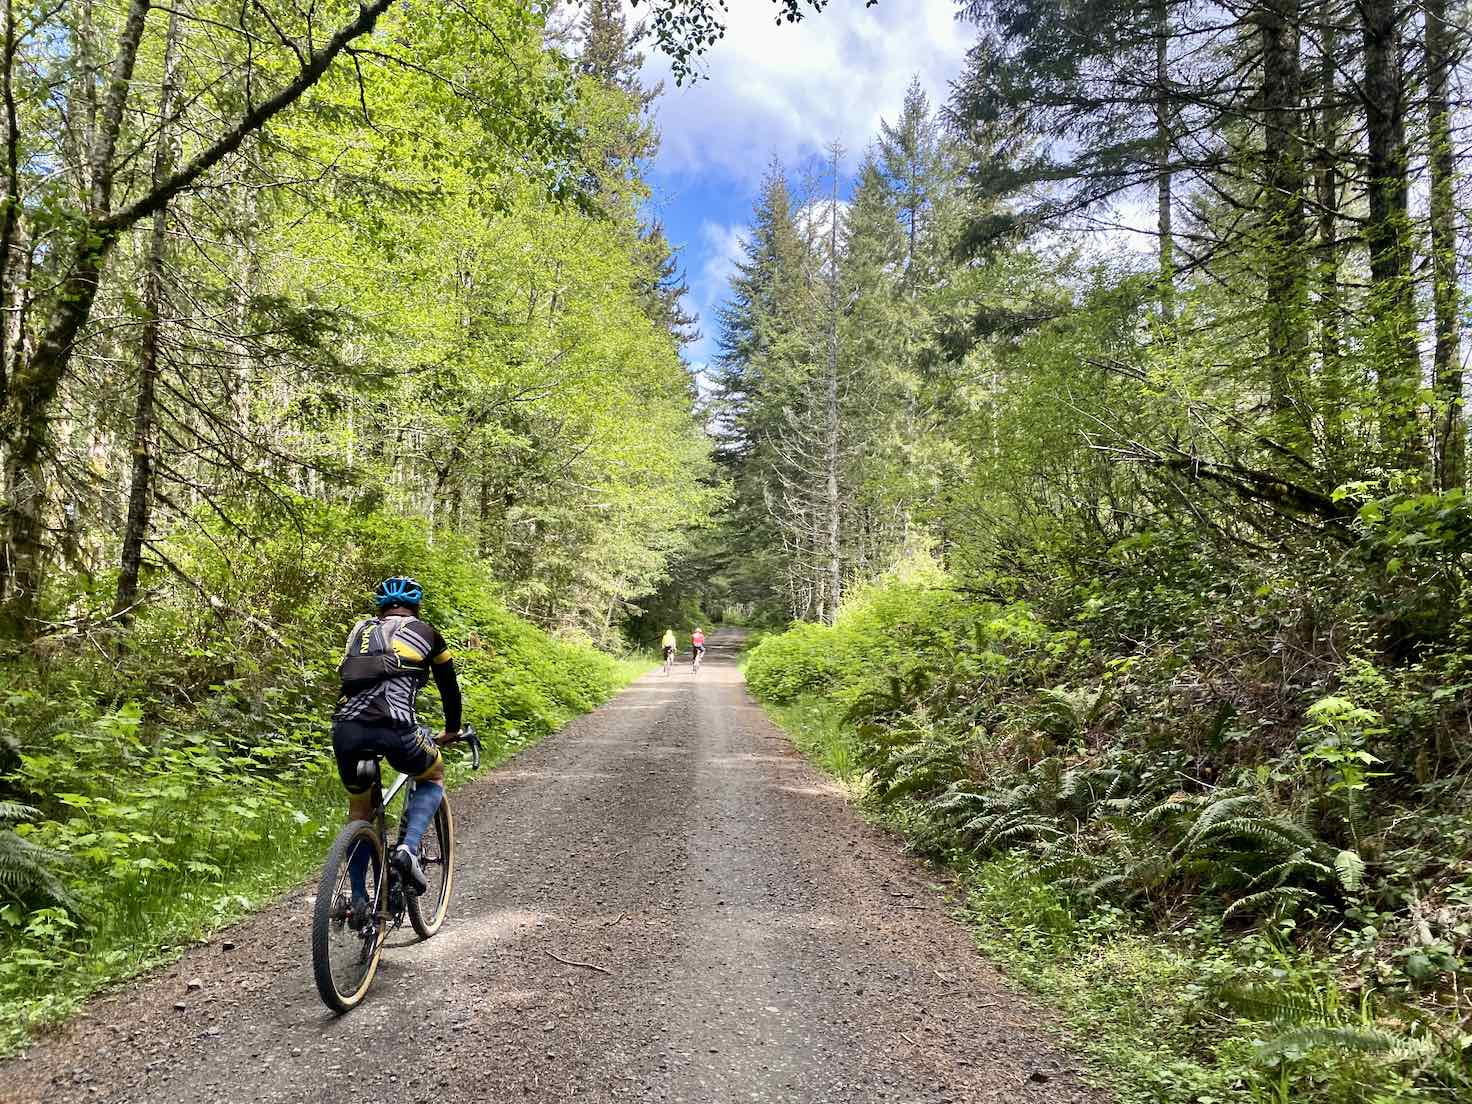 Cyclist on gravel road that is hard-packed in the Siuslaw National Forest.